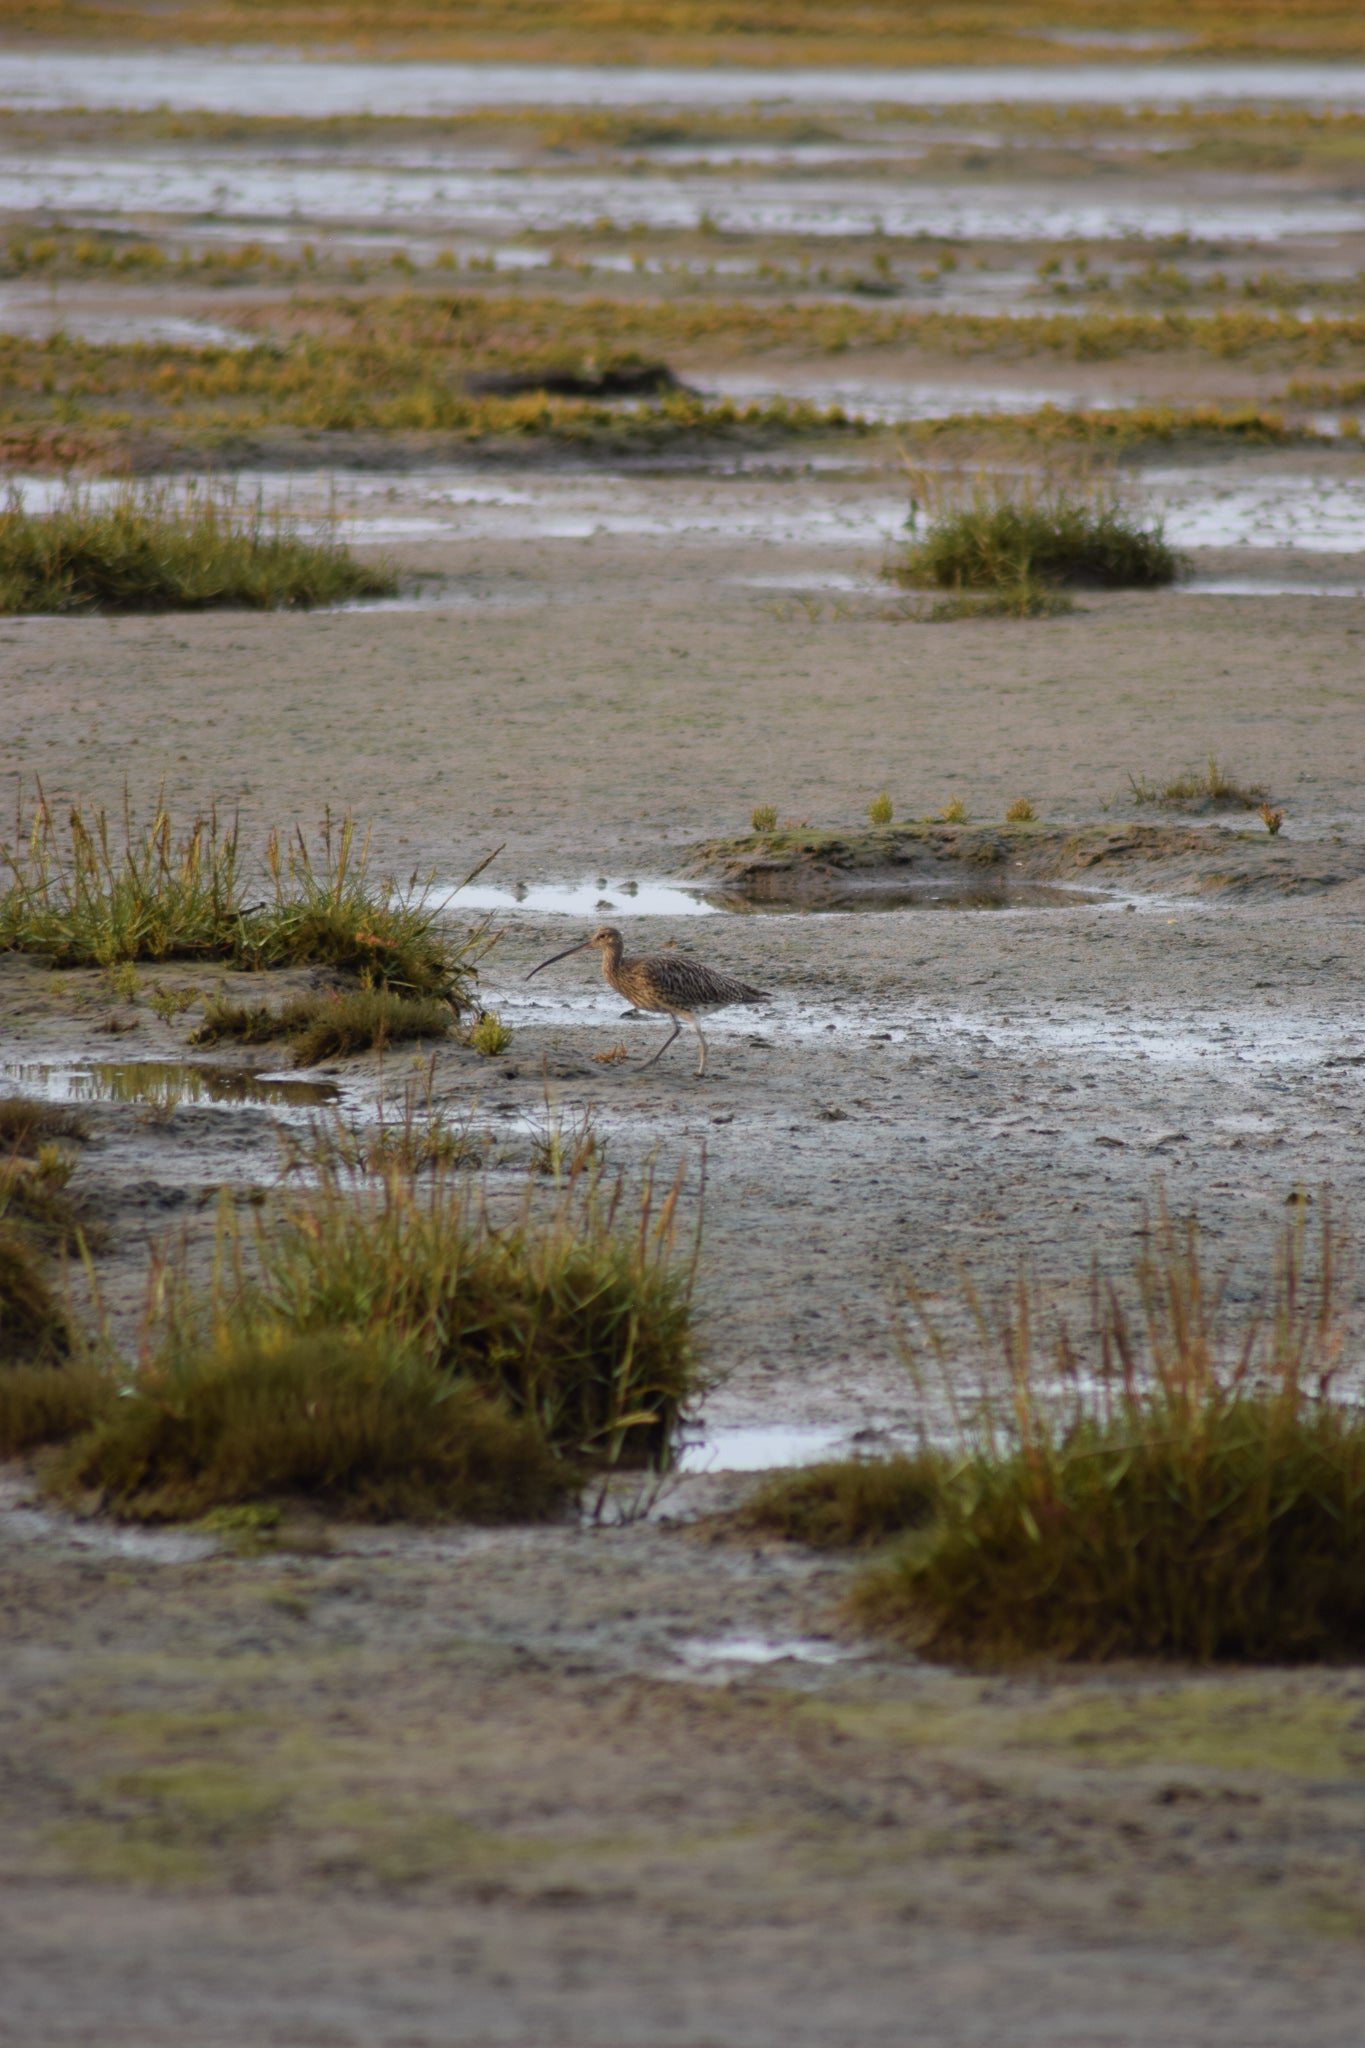 curlew wading in the mud flats